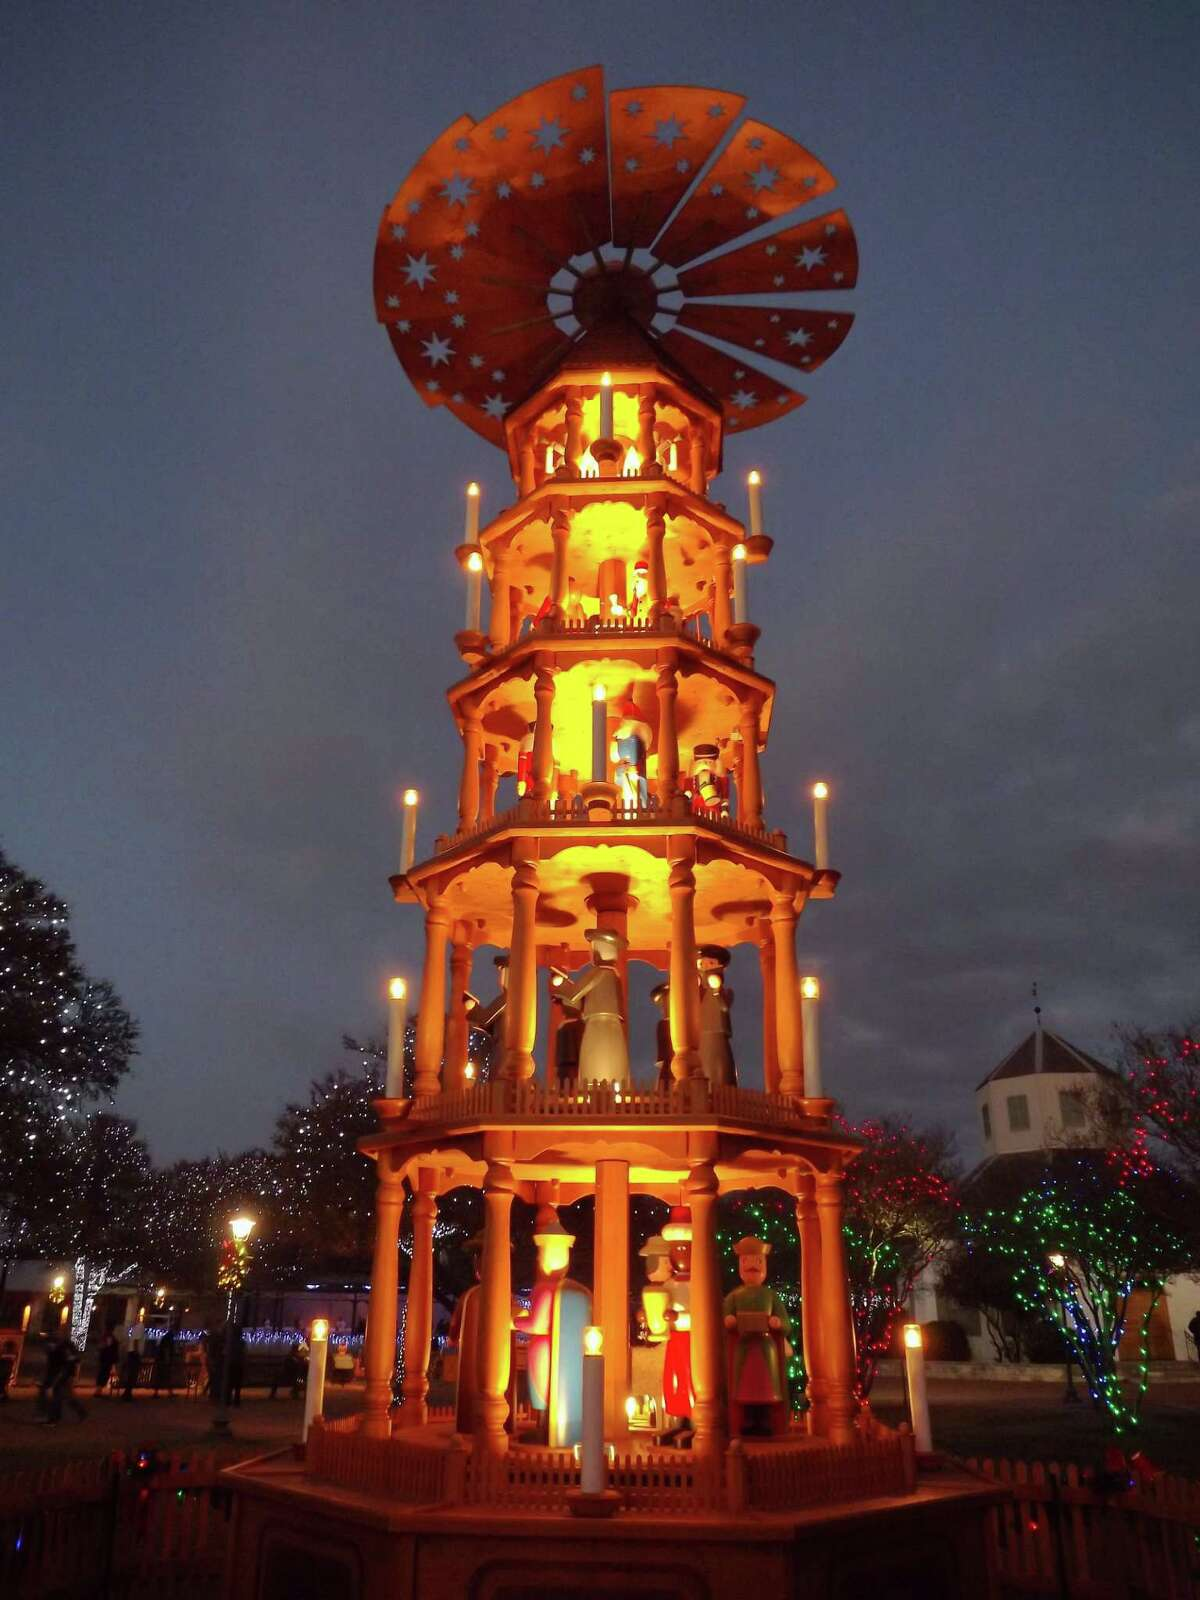 Among Fredericksburg, Texas' holiday traditions is the lighting of a 26-foot-tall German Christmas Pyramid in the Marktplatz.